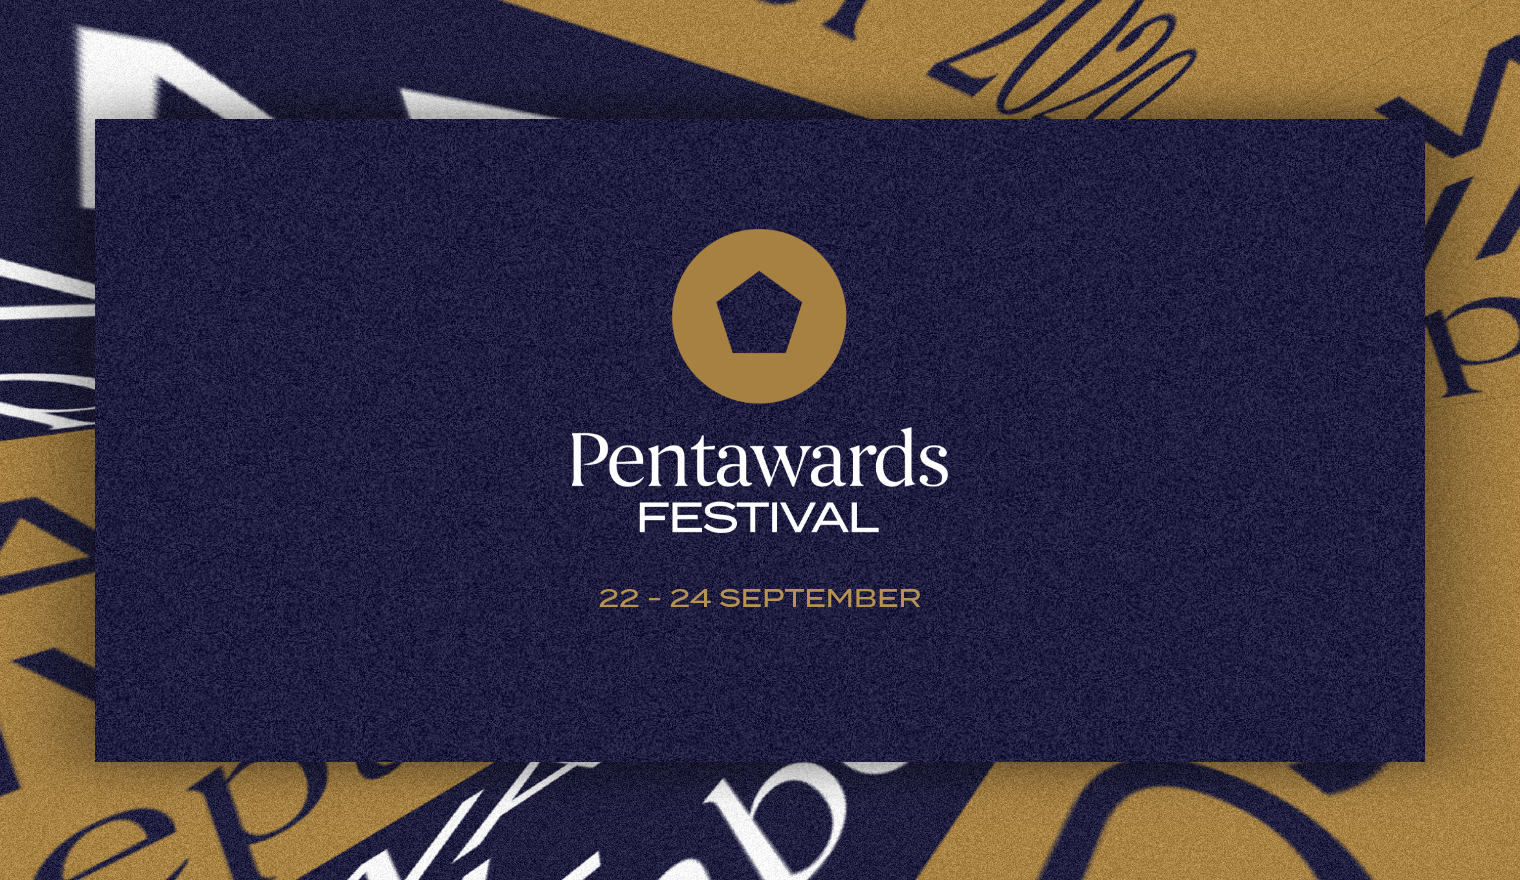 The Pentawards Festival is here!